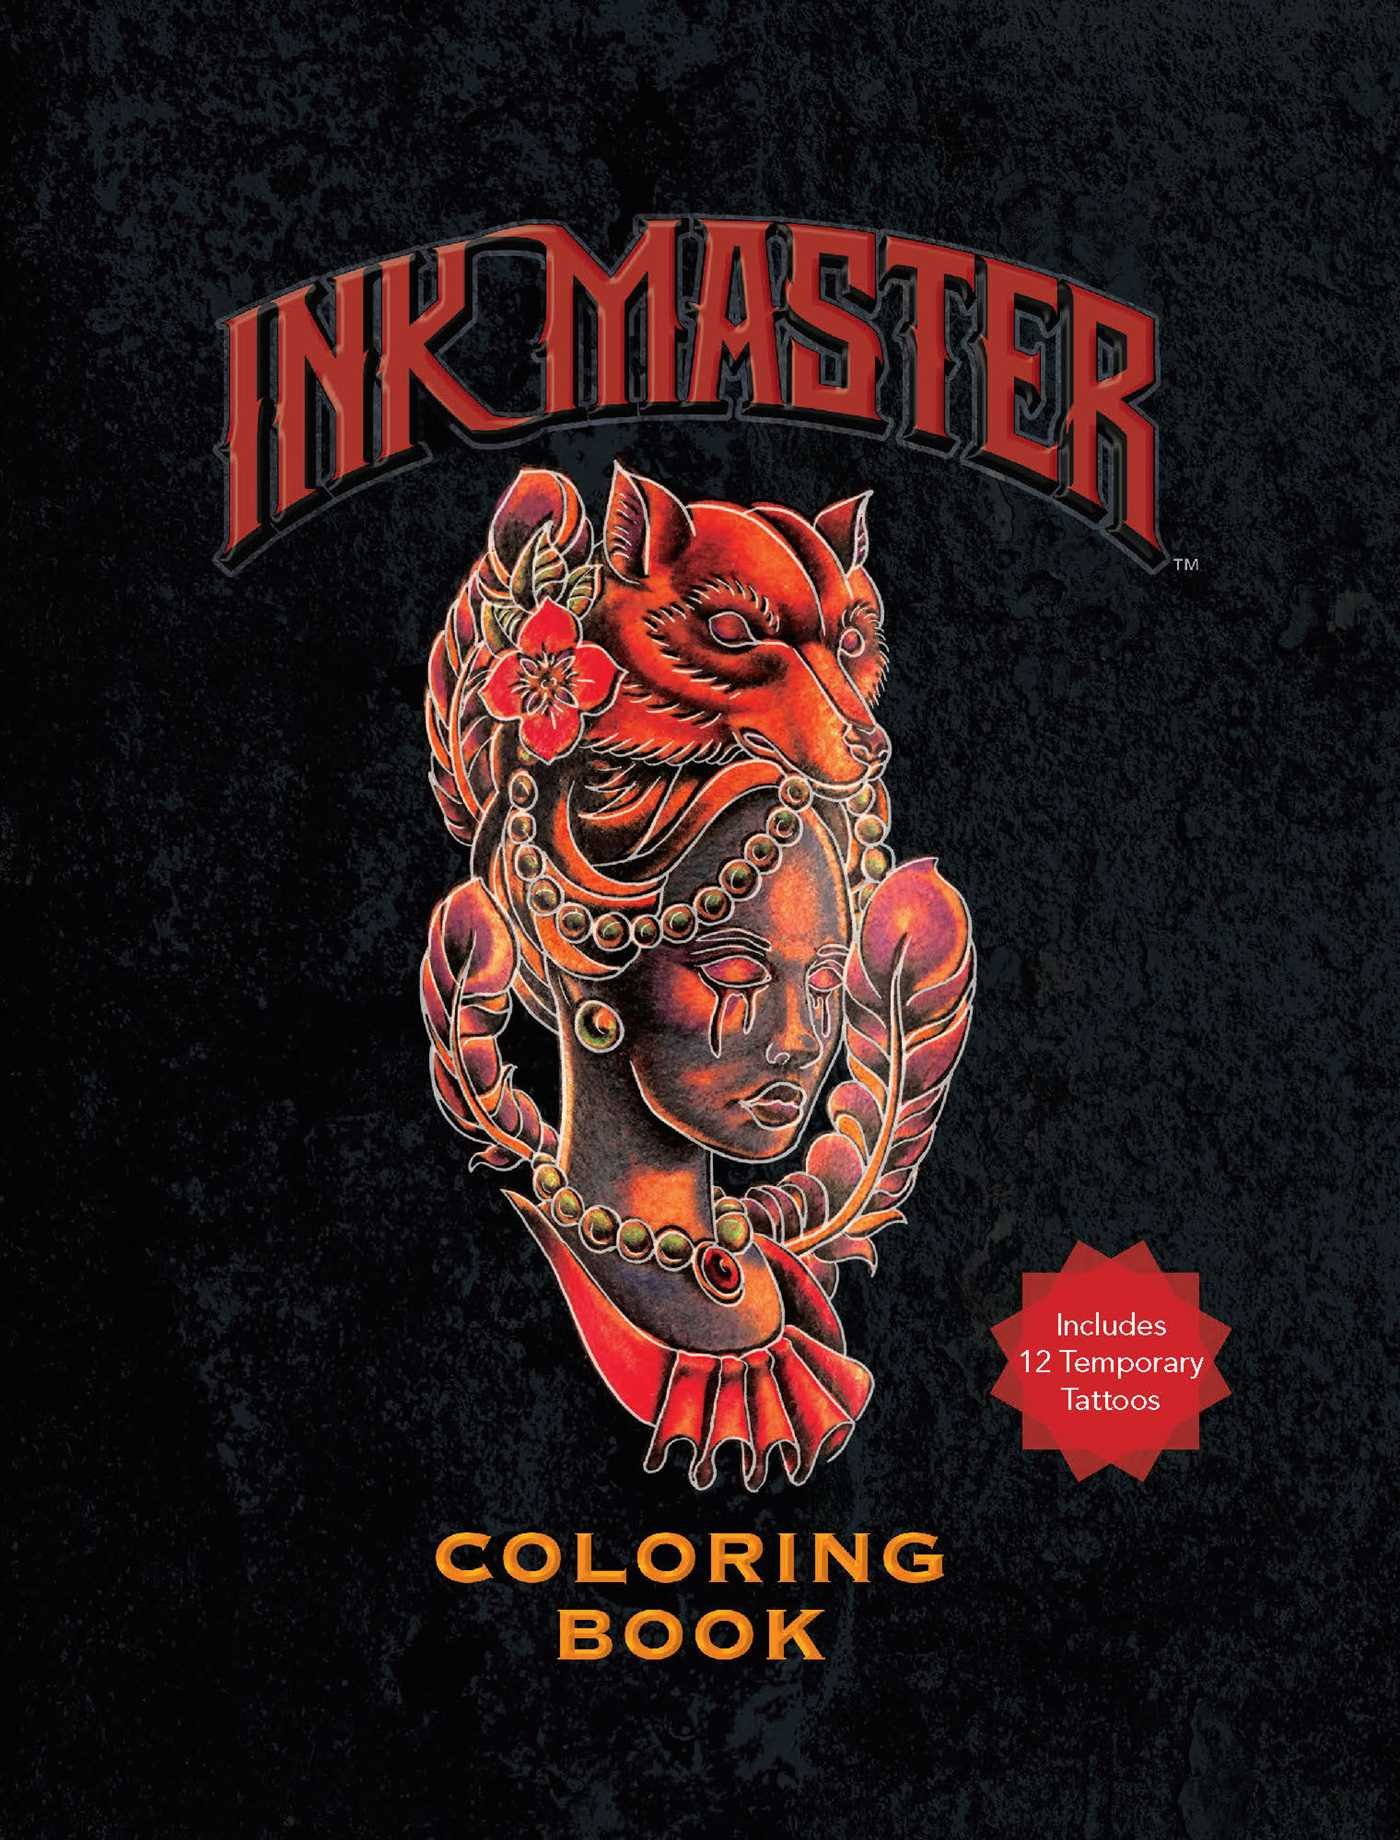 Amazoncom Ink Master Coloring Book 9781681881829 Ink